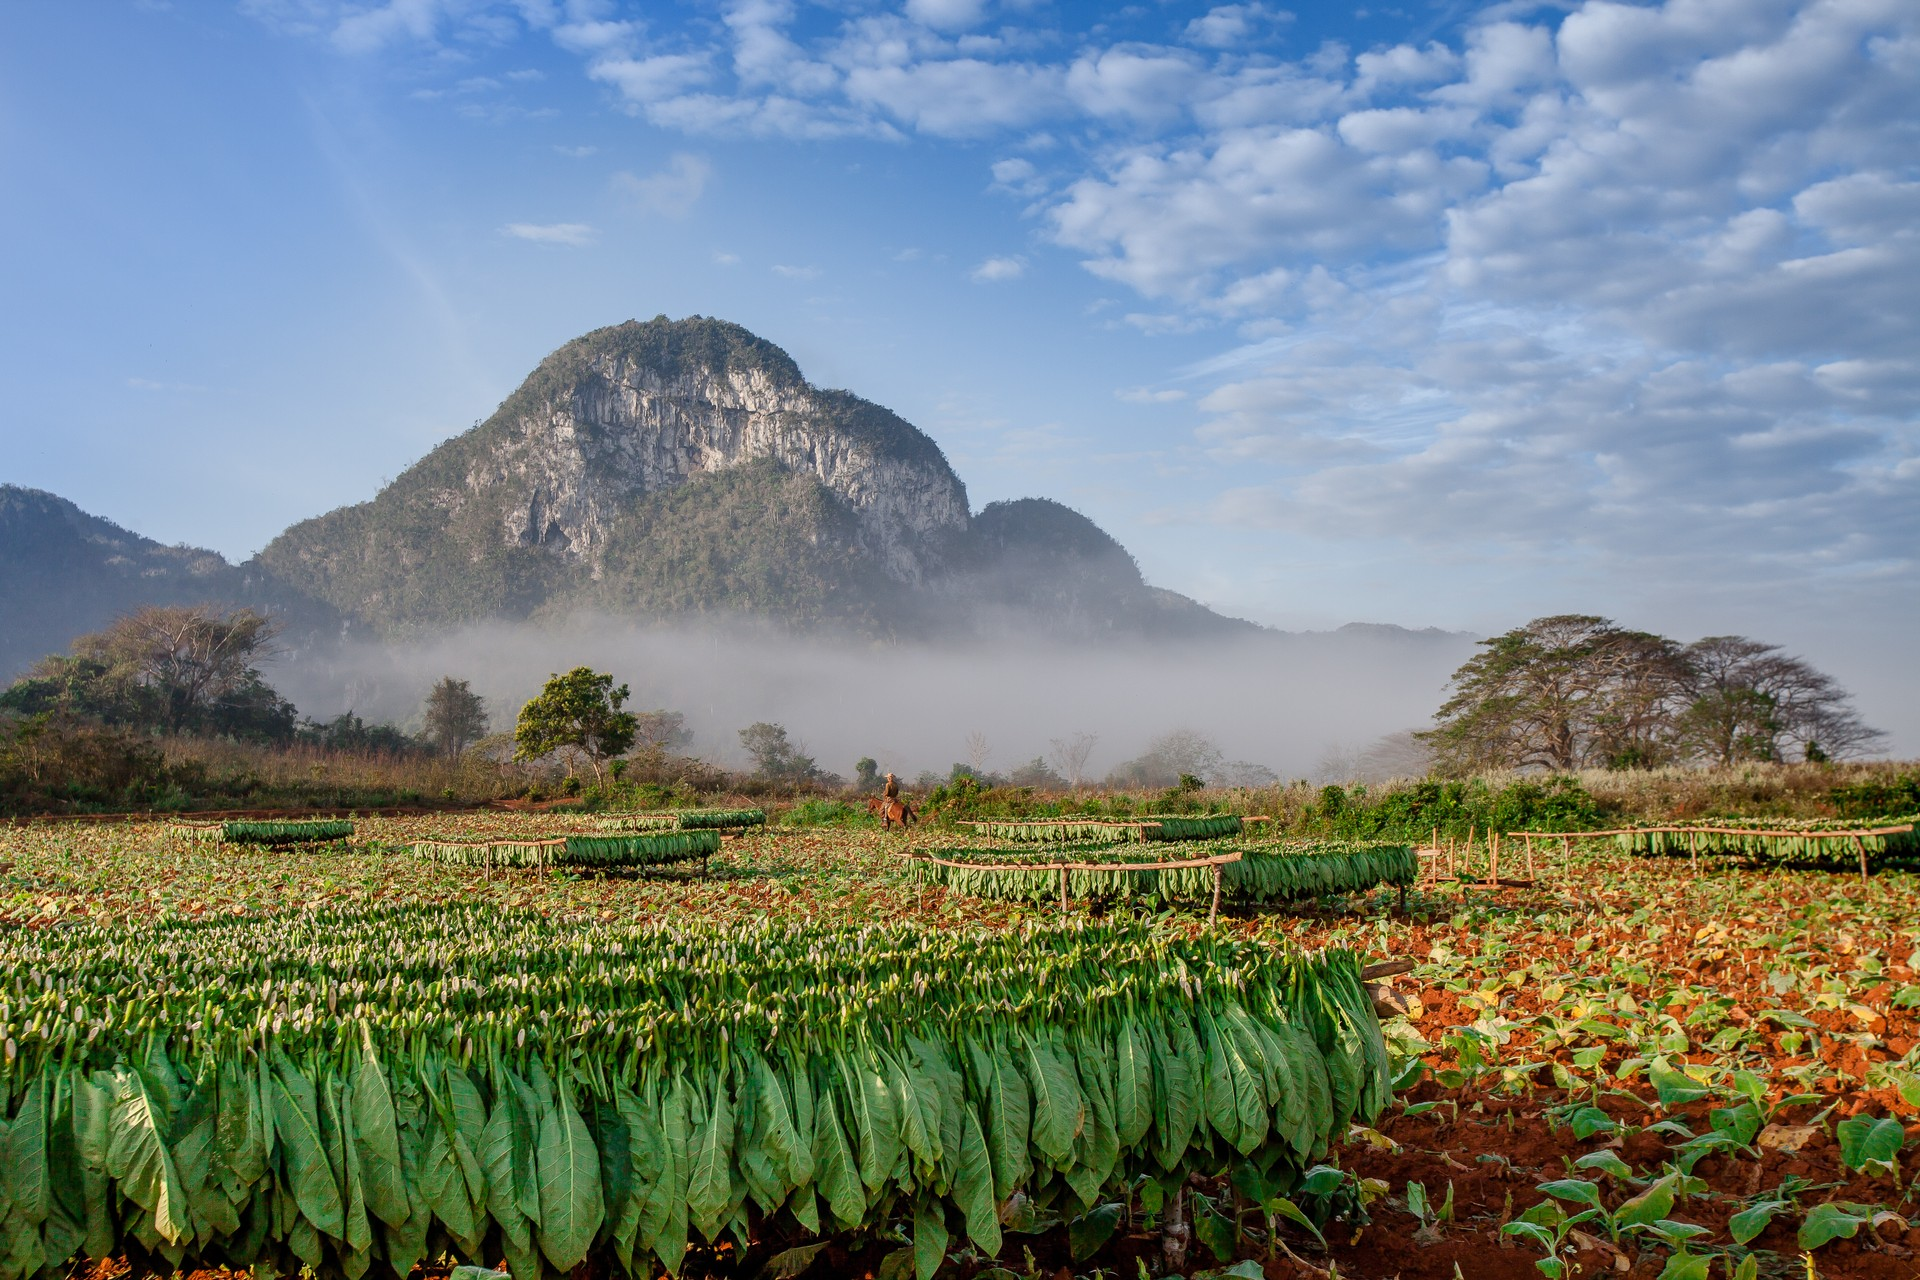 The tobacco fields of Viñales Valley